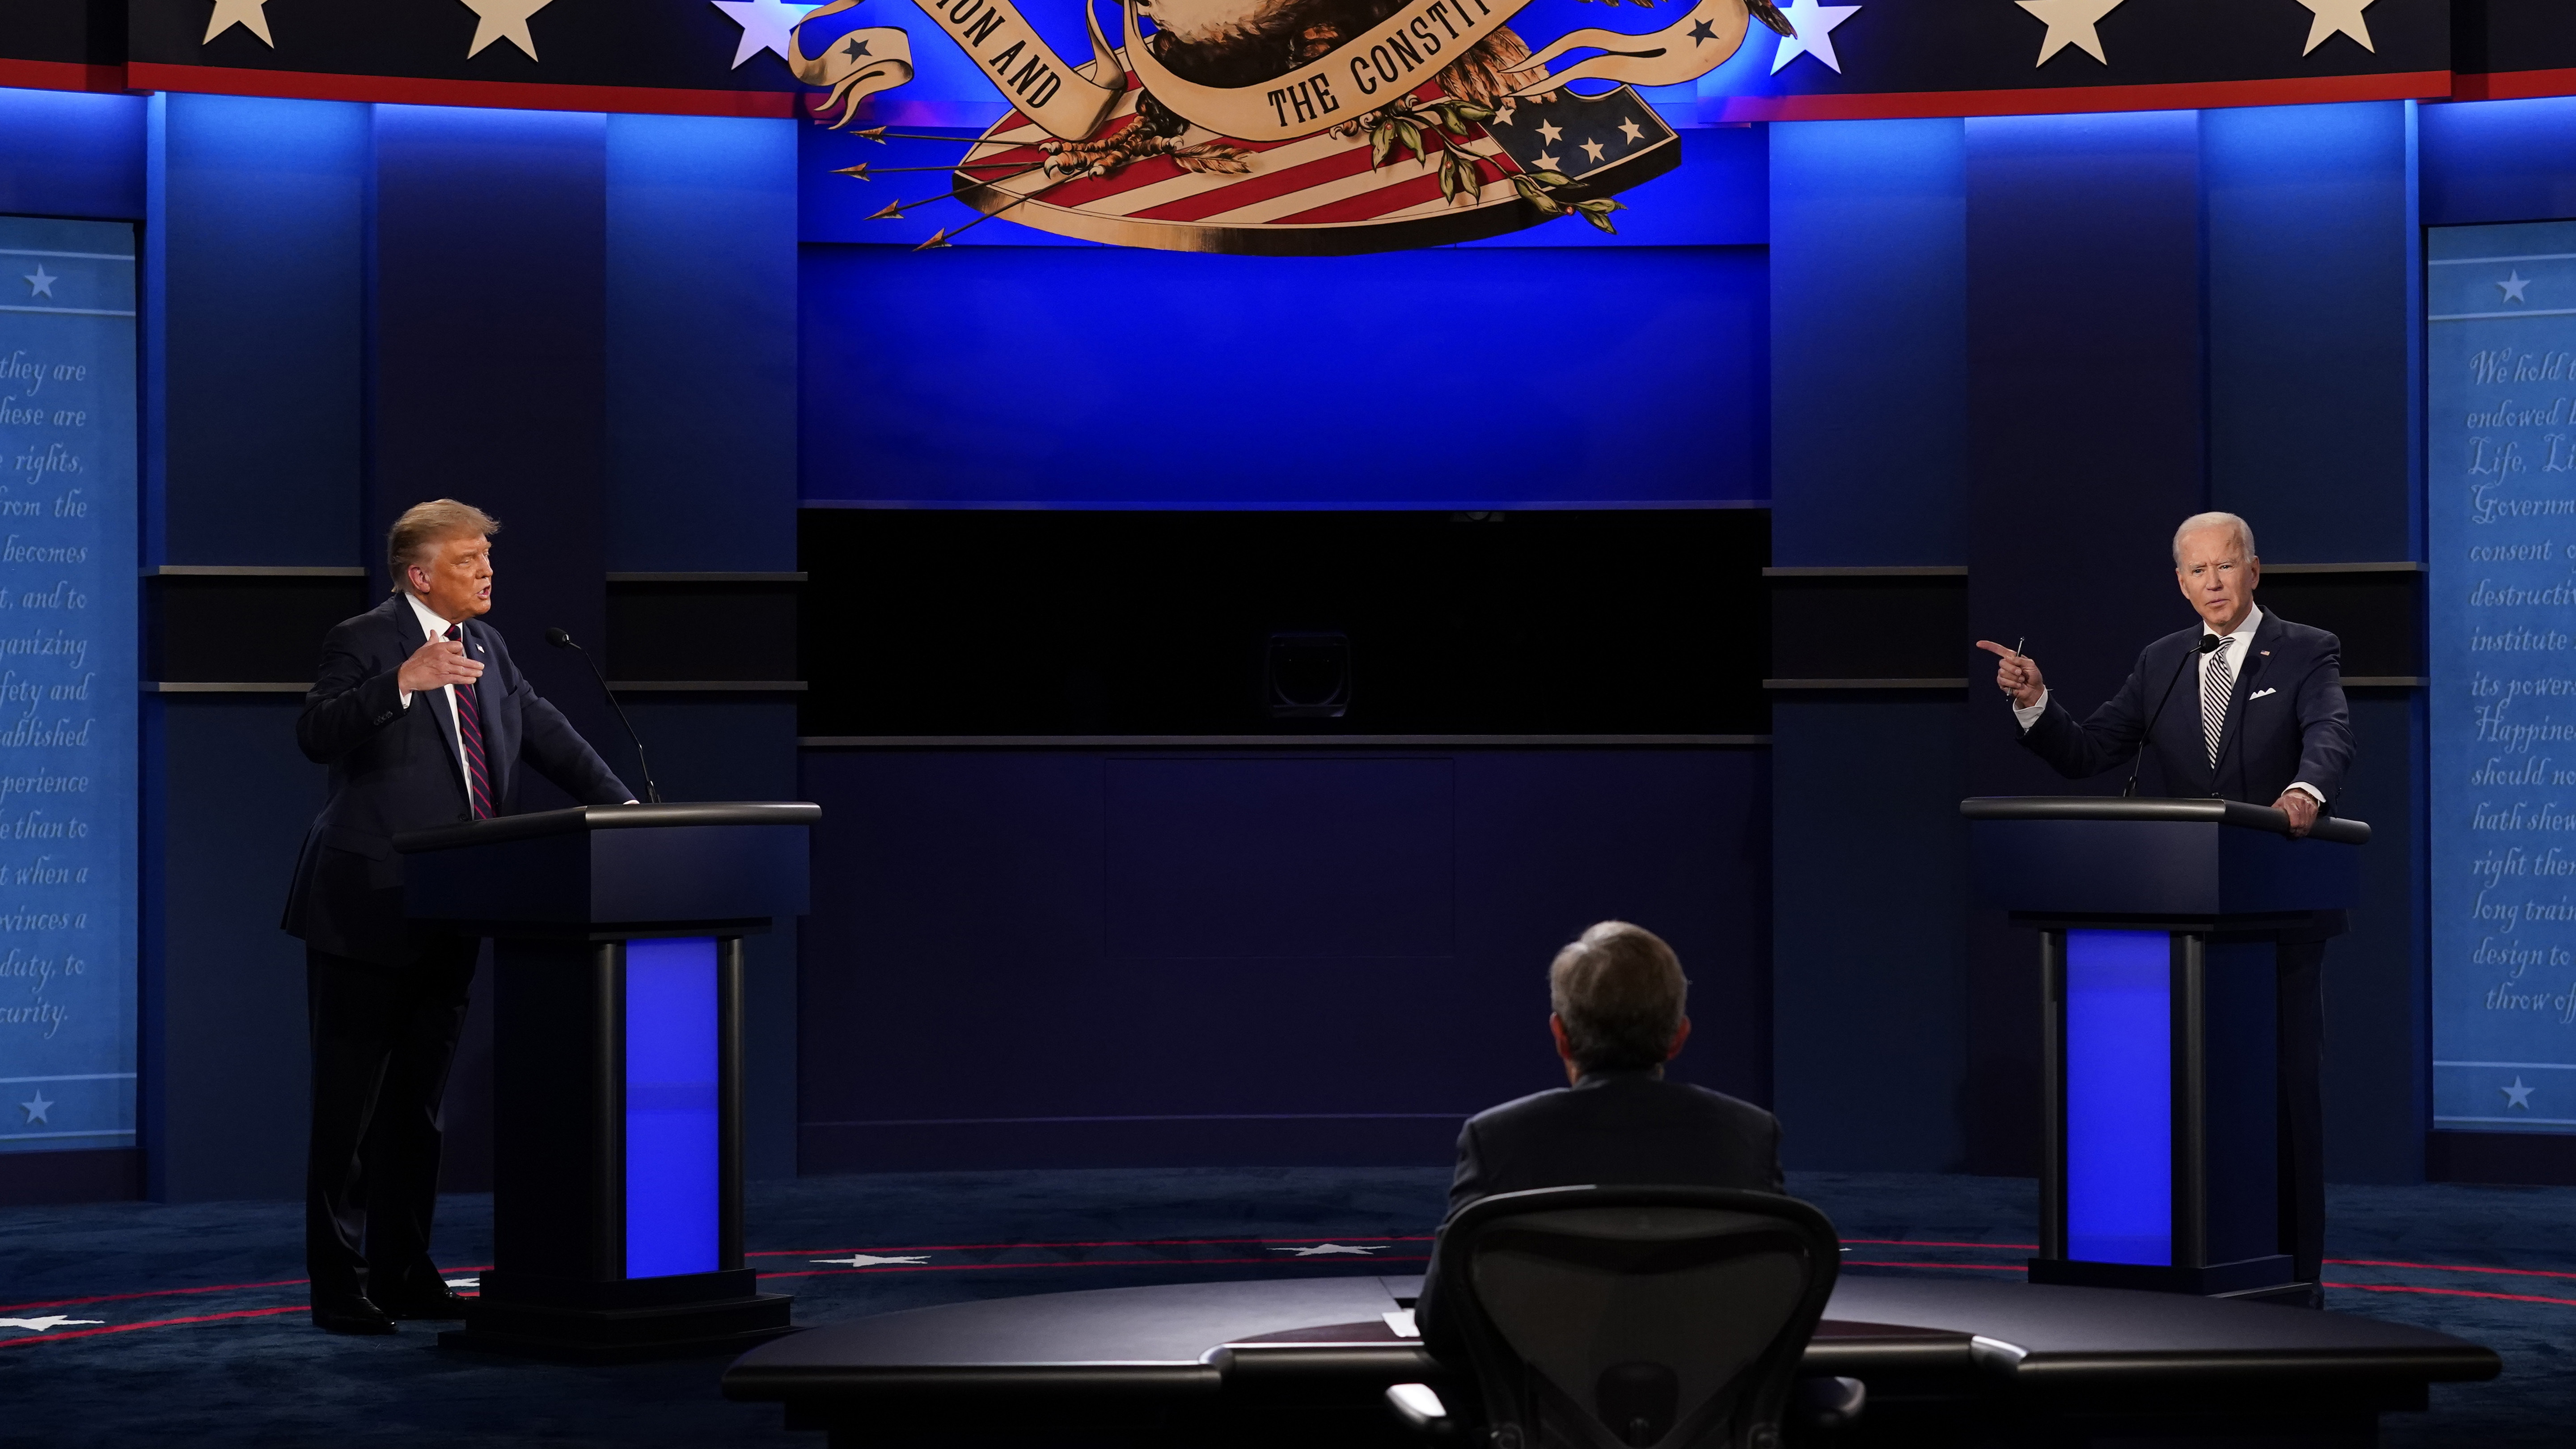 They won't be meeting face to face at the next debate.